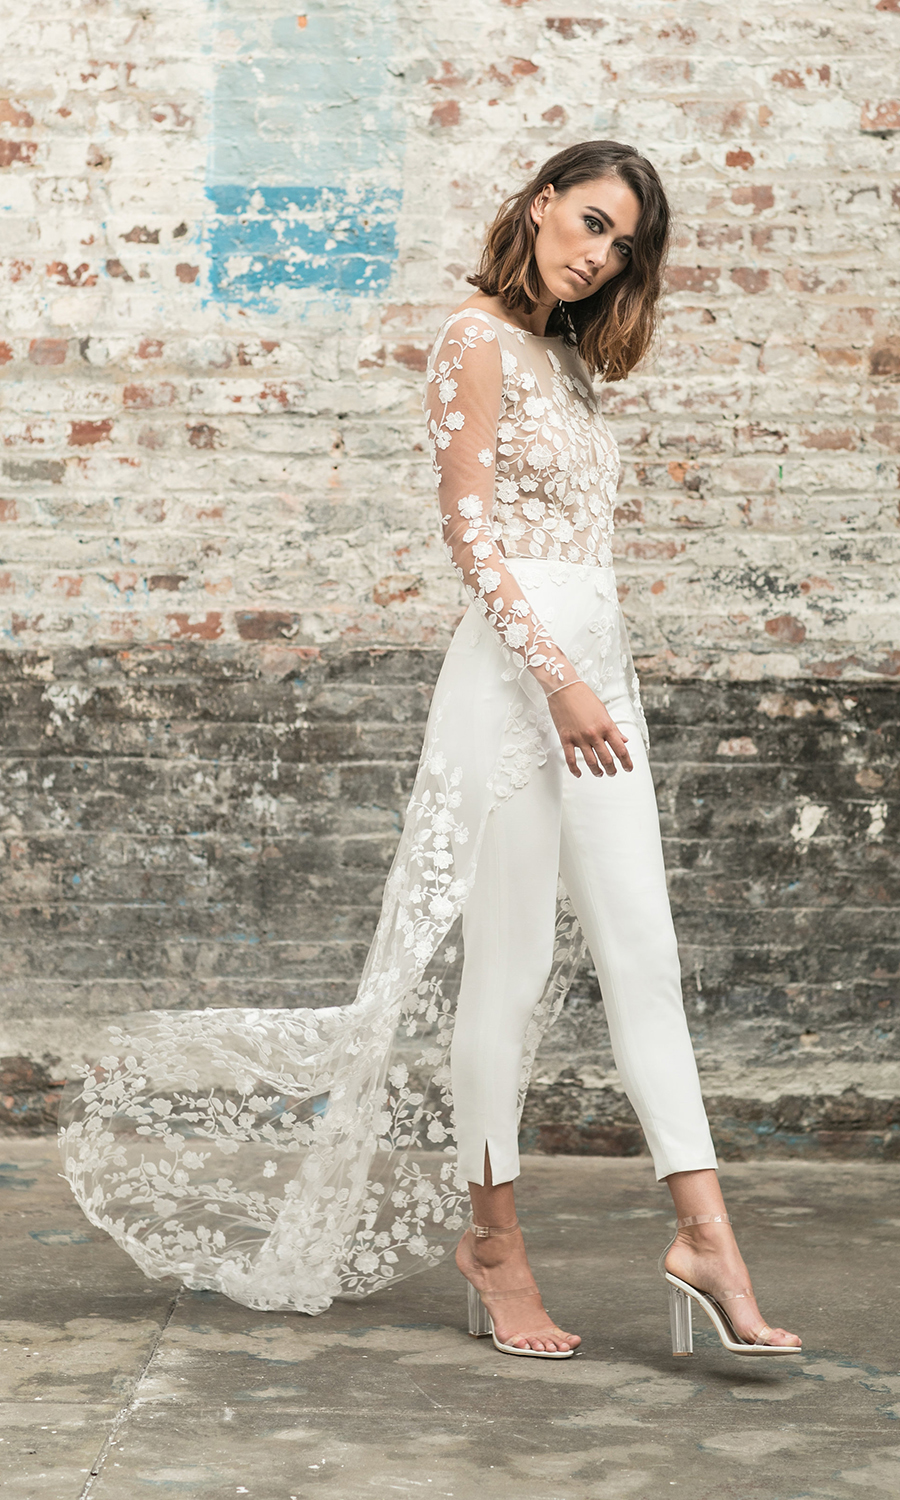 cc6adc19187 How To Incorporate A Wedding Jumpsuit Into Your Bridal Look ...